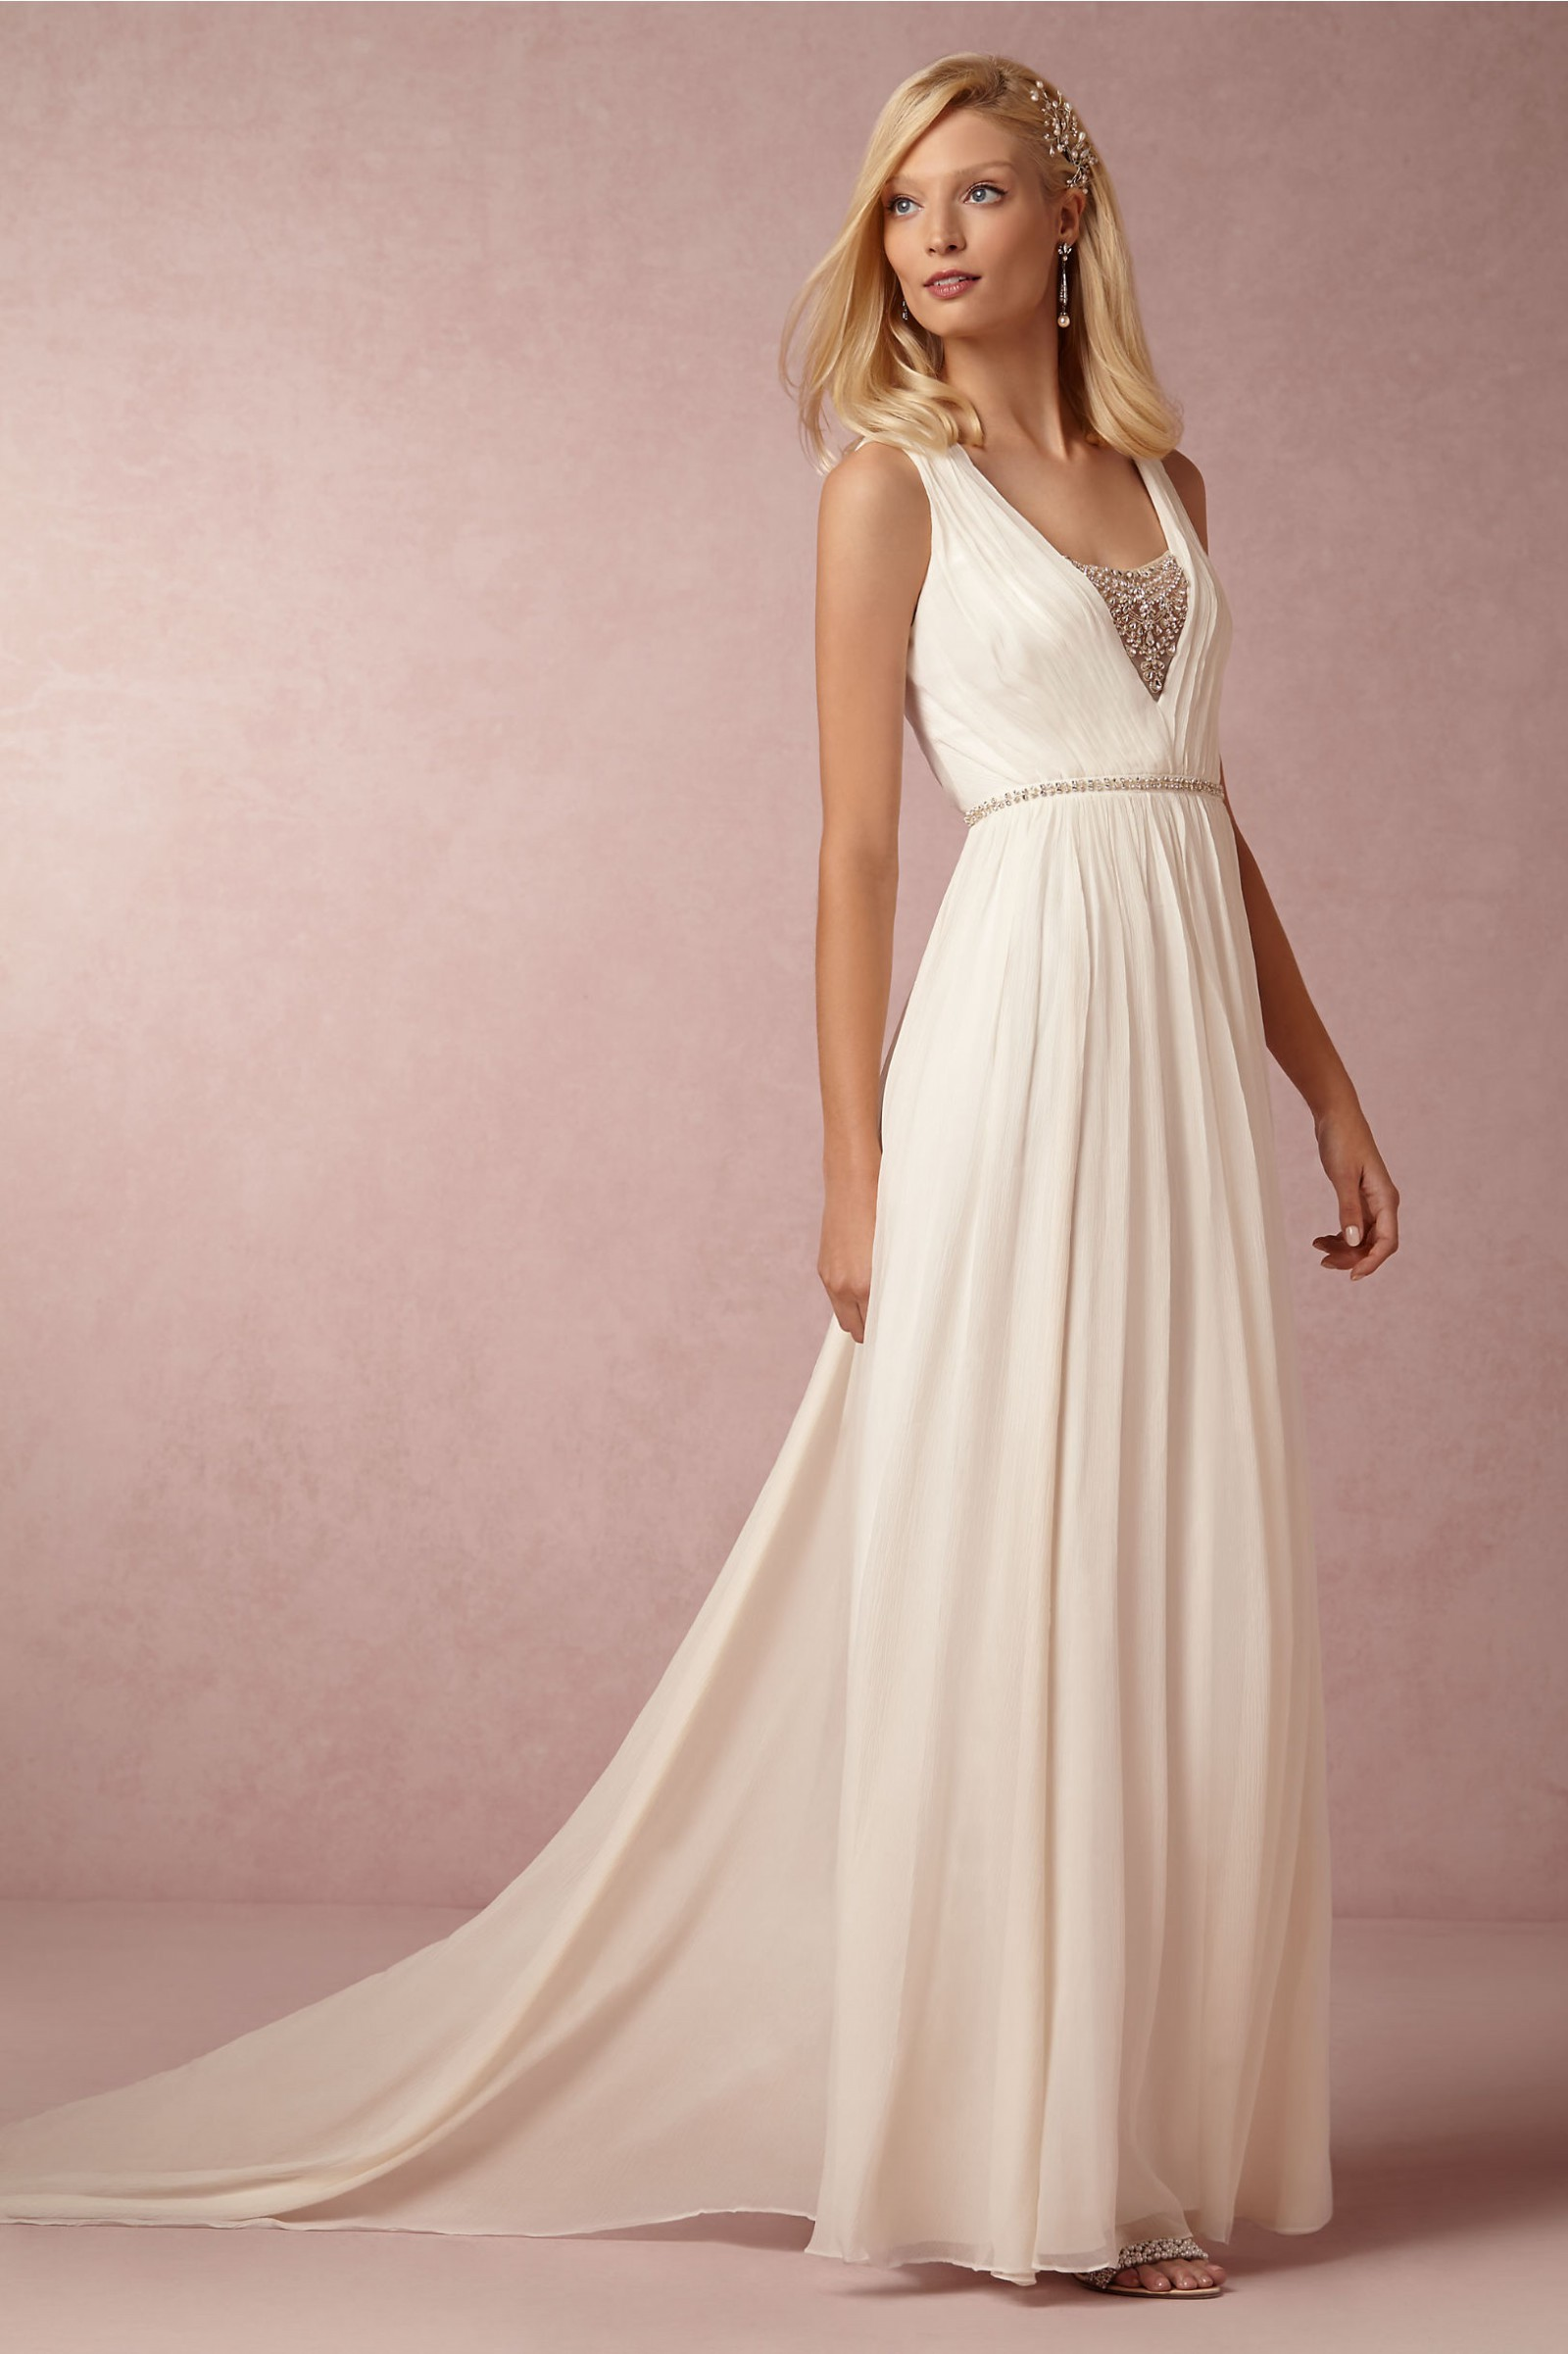 Nicole Miller Millie Bridal Gown - New Wedding Dresses - Stillwhite